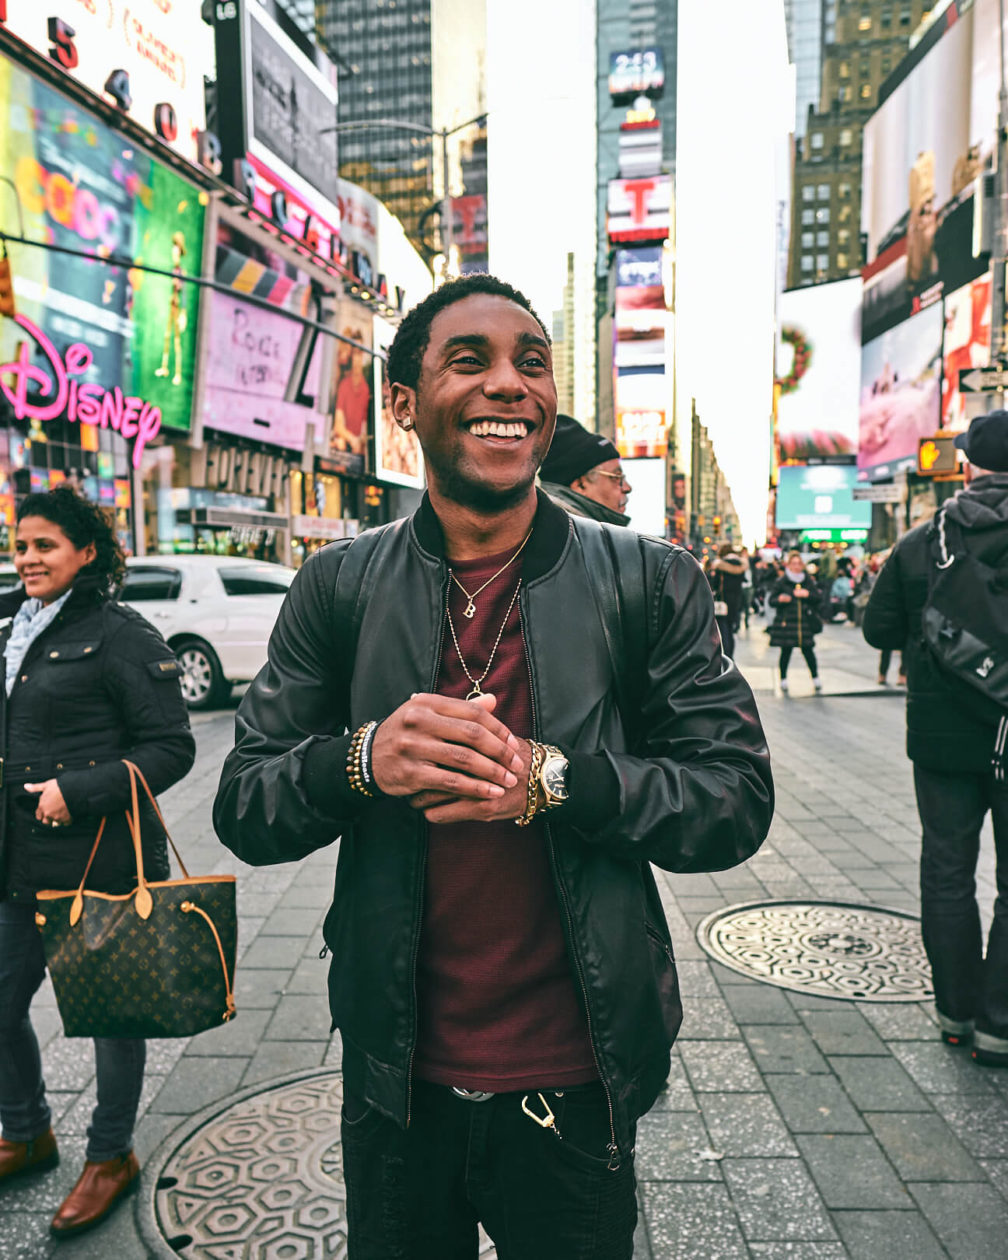 Fuji X Pro2 with xf 16mm f1.4 - Fashion lifestyle photography around New York City Time Square - Model: Bryan